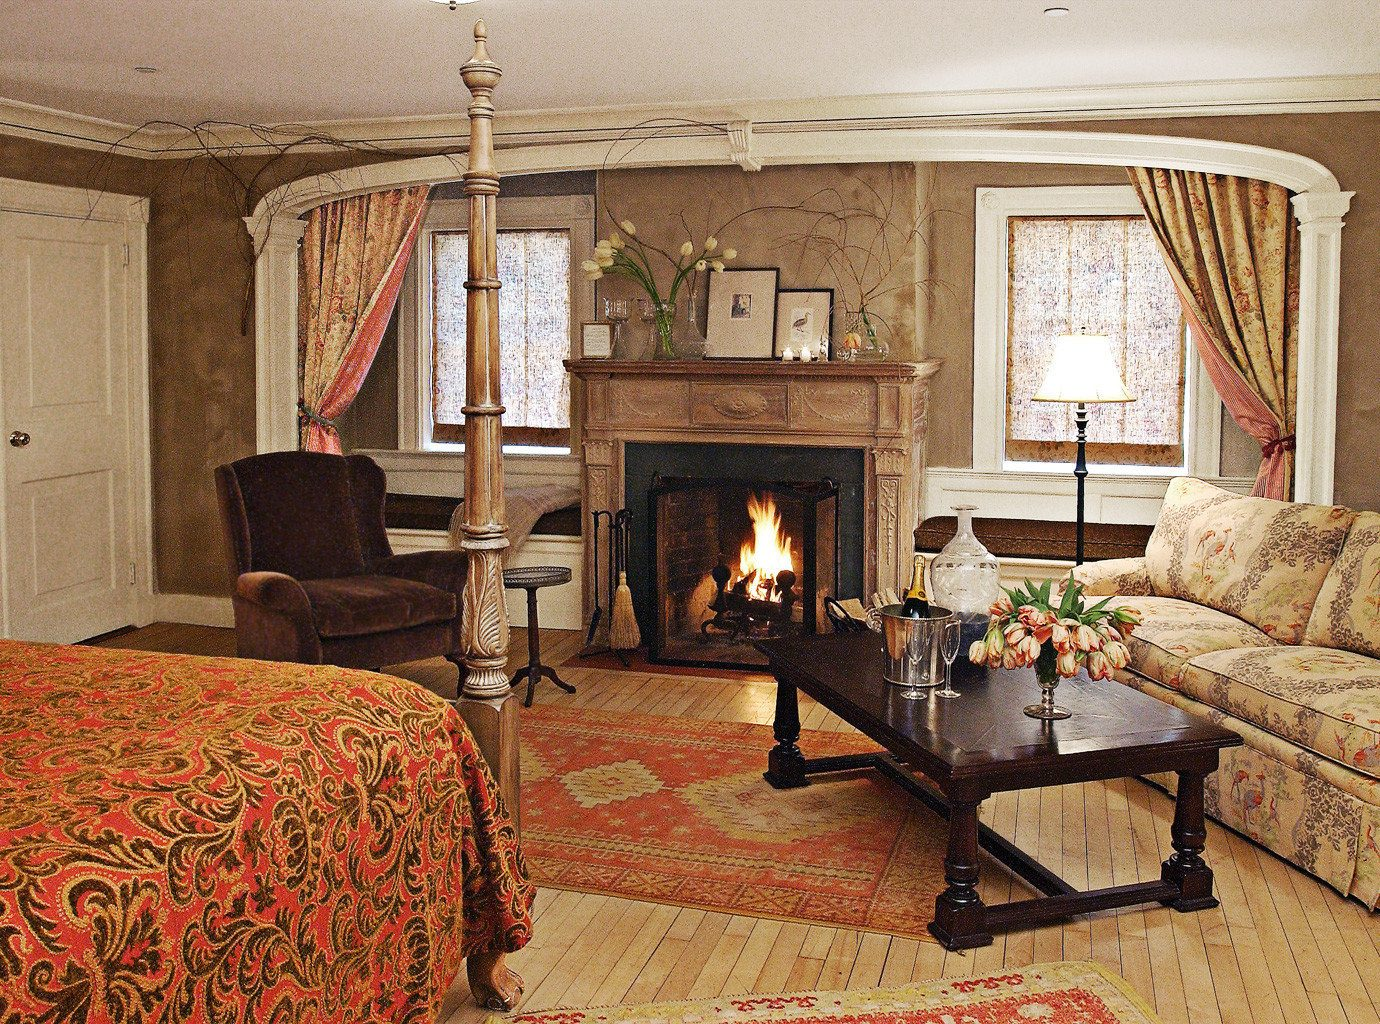 Bedroom Boutique Hotels Country Fireplace Romance Romantic Trip Ideas Winter indoor room wall floor sofa Living living room property ceiling home estate house cottage hardwood interior design real estate Suite farmhouse furniture decorated